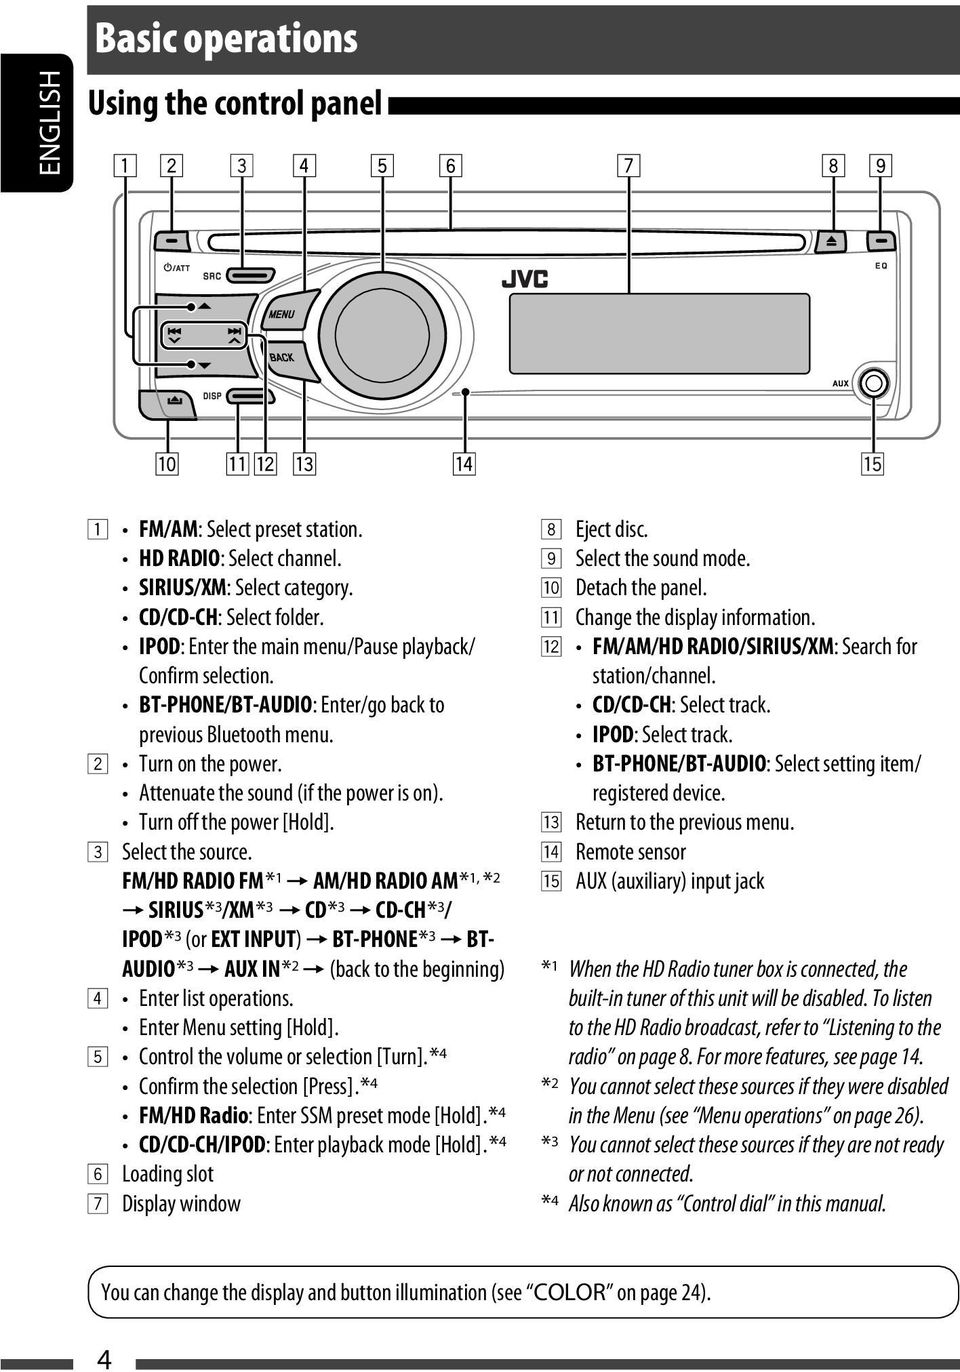 Instructions Kd A305 R300 Cd Receiver Receptor Con Jvc G220 Wiring Diagram Turn Off The Power Hold 3 Select Source